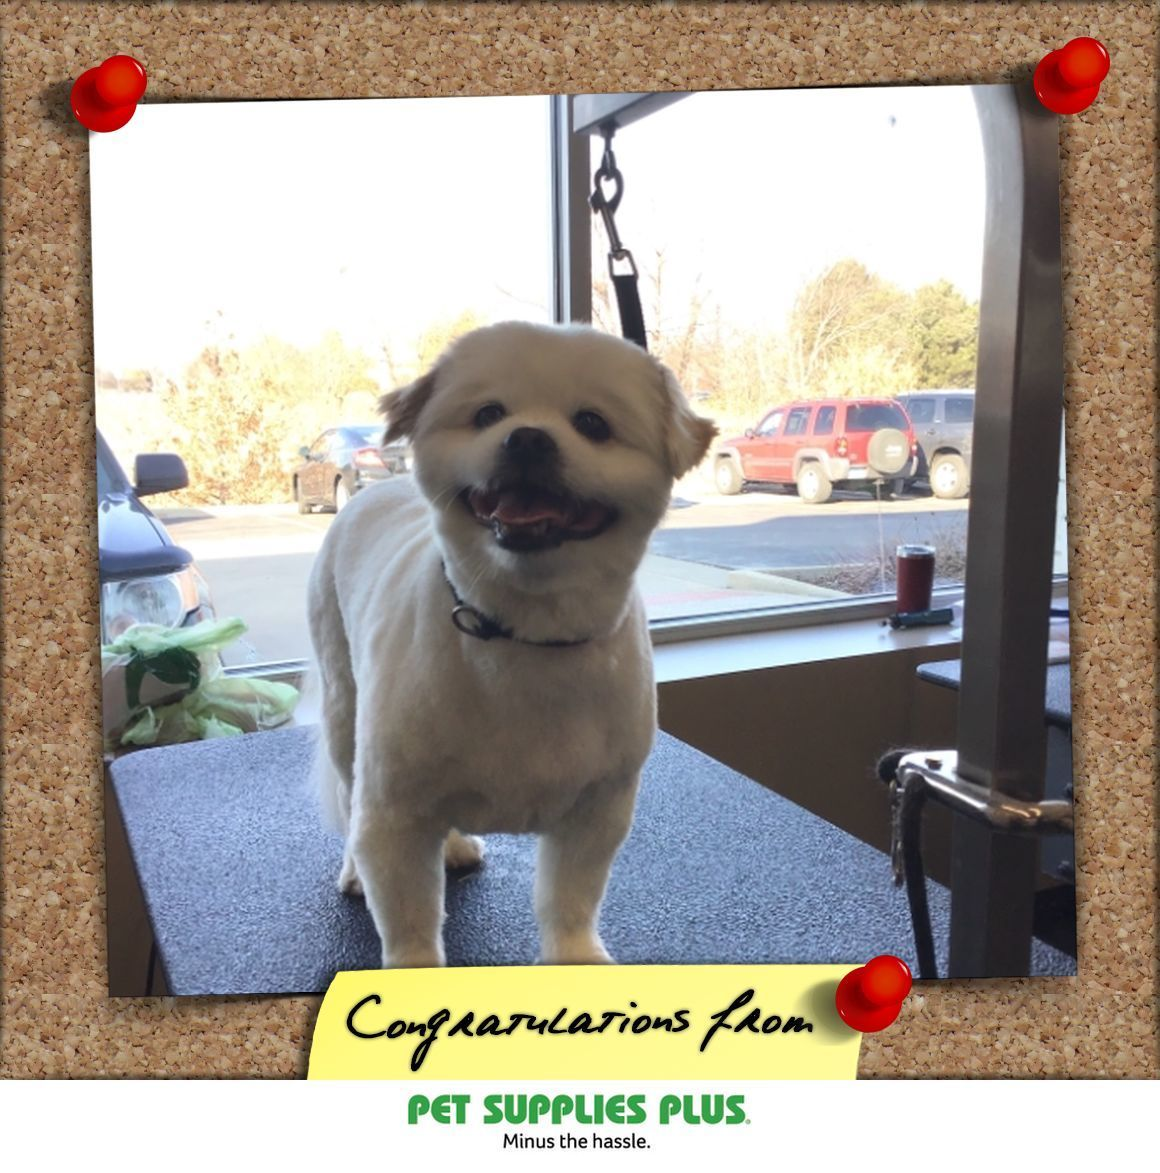 York S Snap From Pet Supplies Plus Orland Park With Images Pet